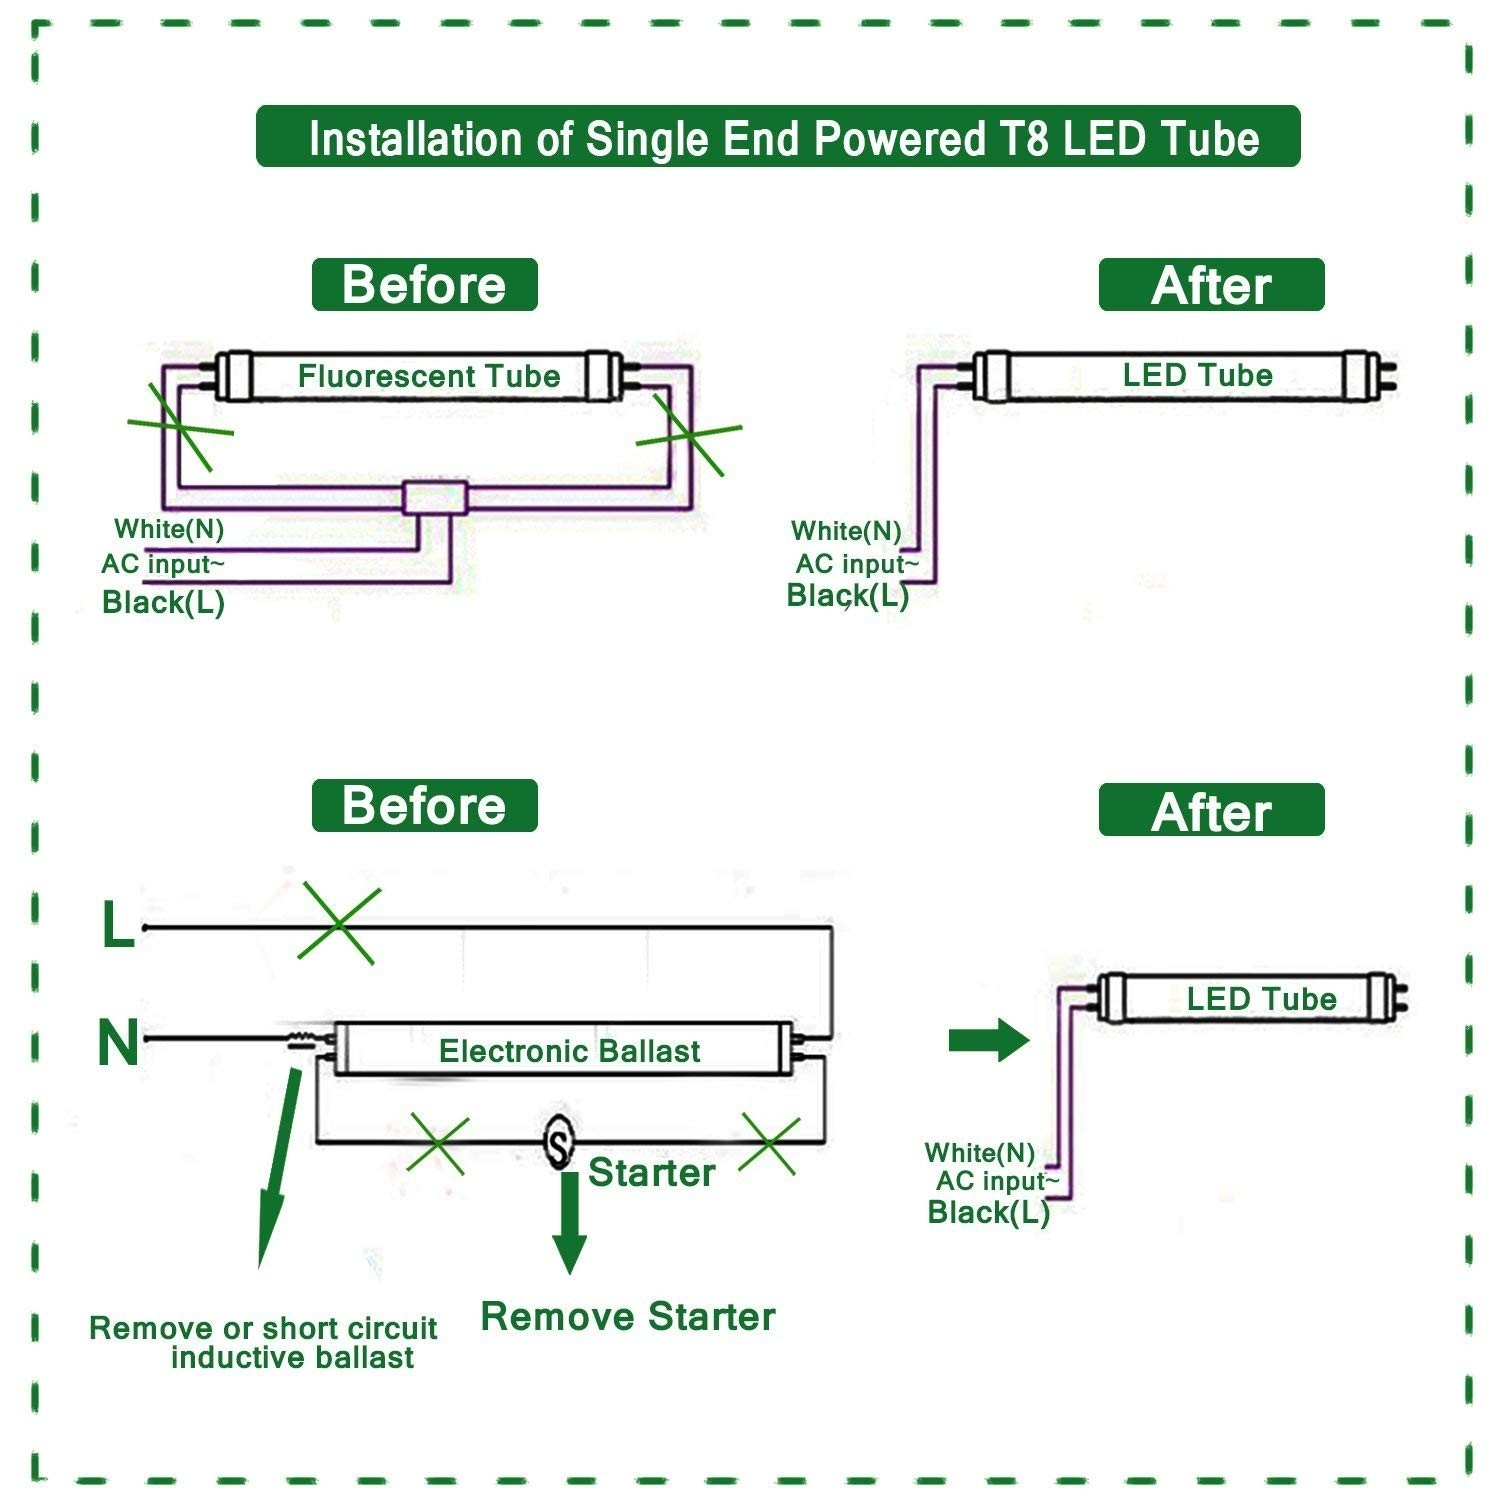 t8 led wiring diagram Collection-Wiring Diagram for Led Tubes New Wiring Diagram Led Tube Philips Refrence T8 Led Tube Wiring 5-o